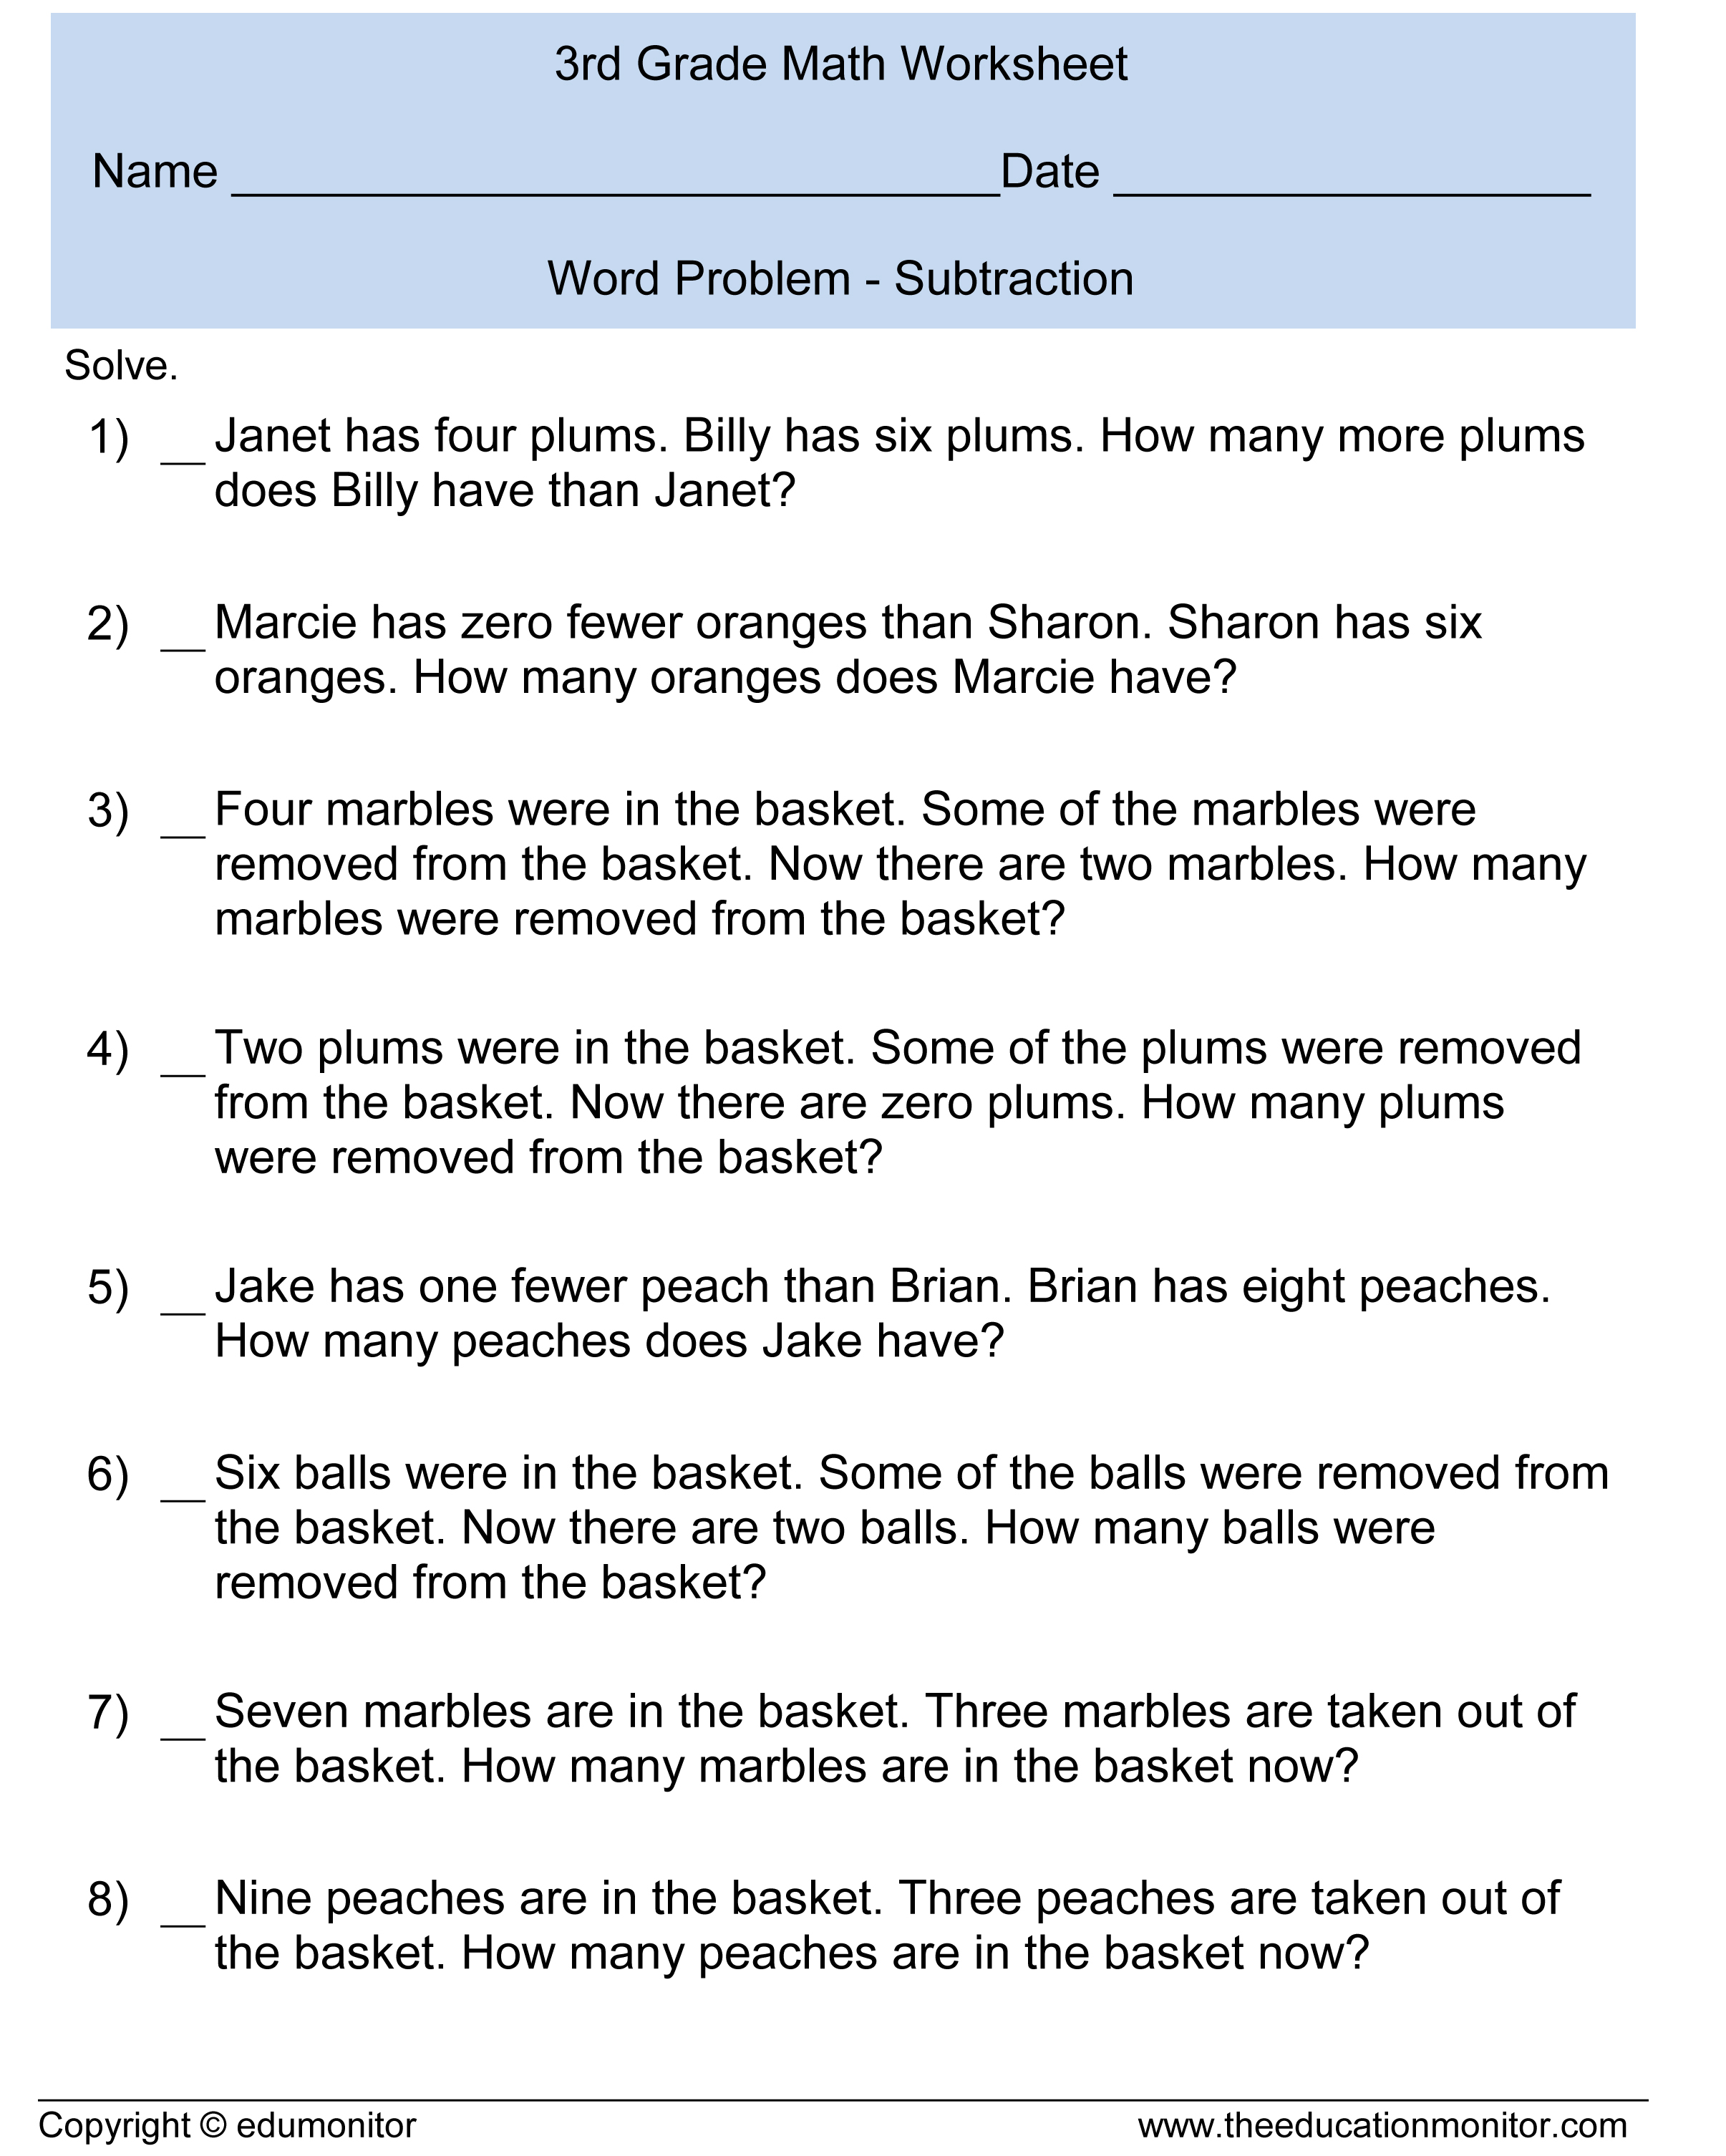 Addition And Subtraction Word Problems Worksheets For Kindergarten – 3rd Grade Word Problems Worksheets